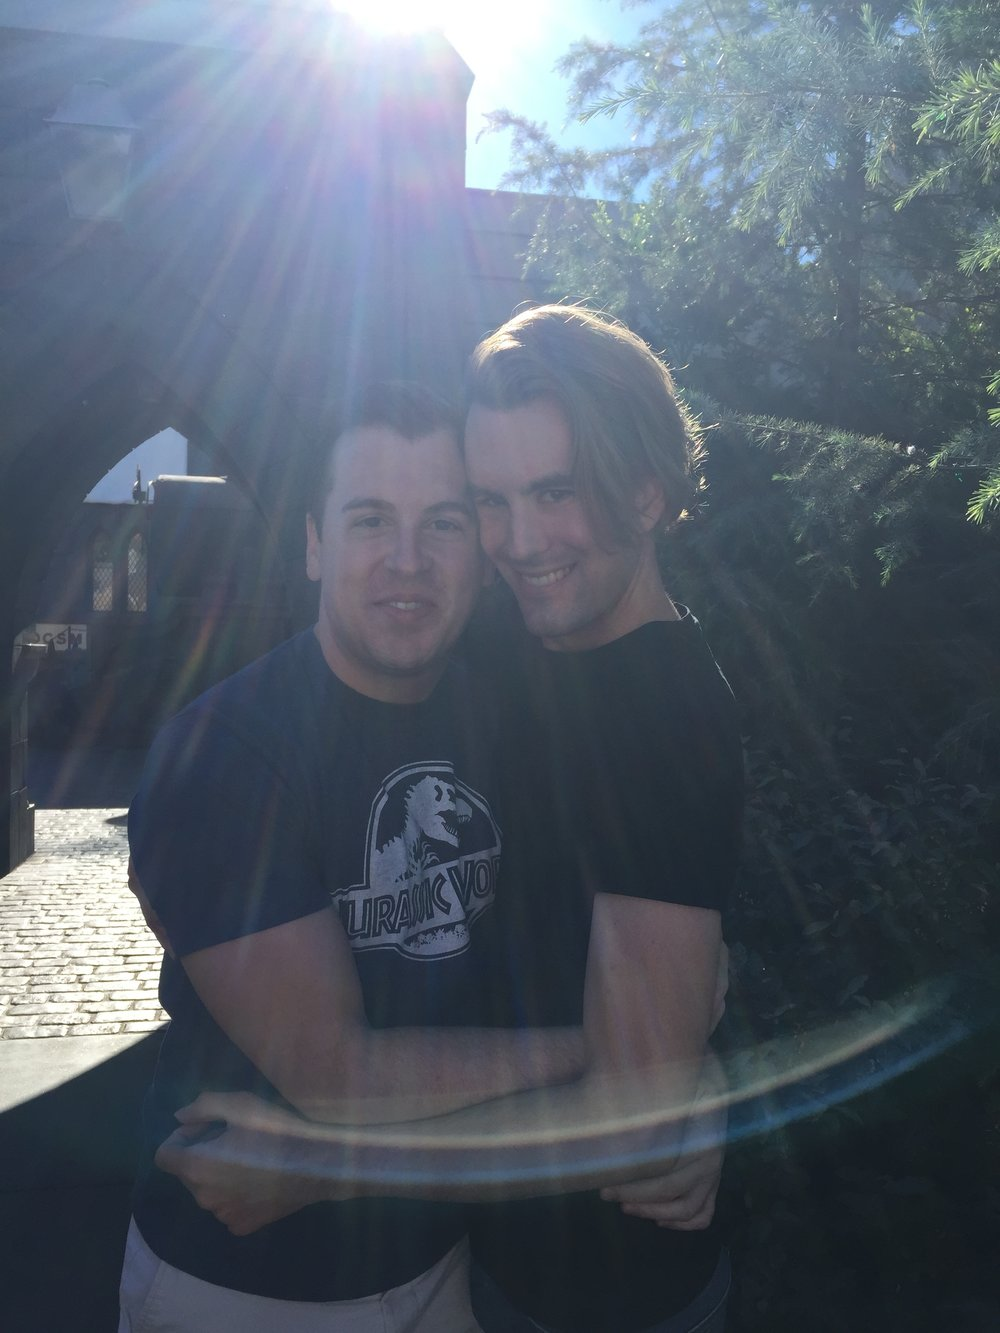 [image description: My best friend, Ethan, and his partner, Kyle, in front of the archway to Hogsmeade. Kyle is a white man wearing white shorts and a blue Jurassic Park shirt and he and Ethan have their arms around each other and are smiling at the camera. The sun is above them and the rays, which are visible in the photo, are shining down on them.]